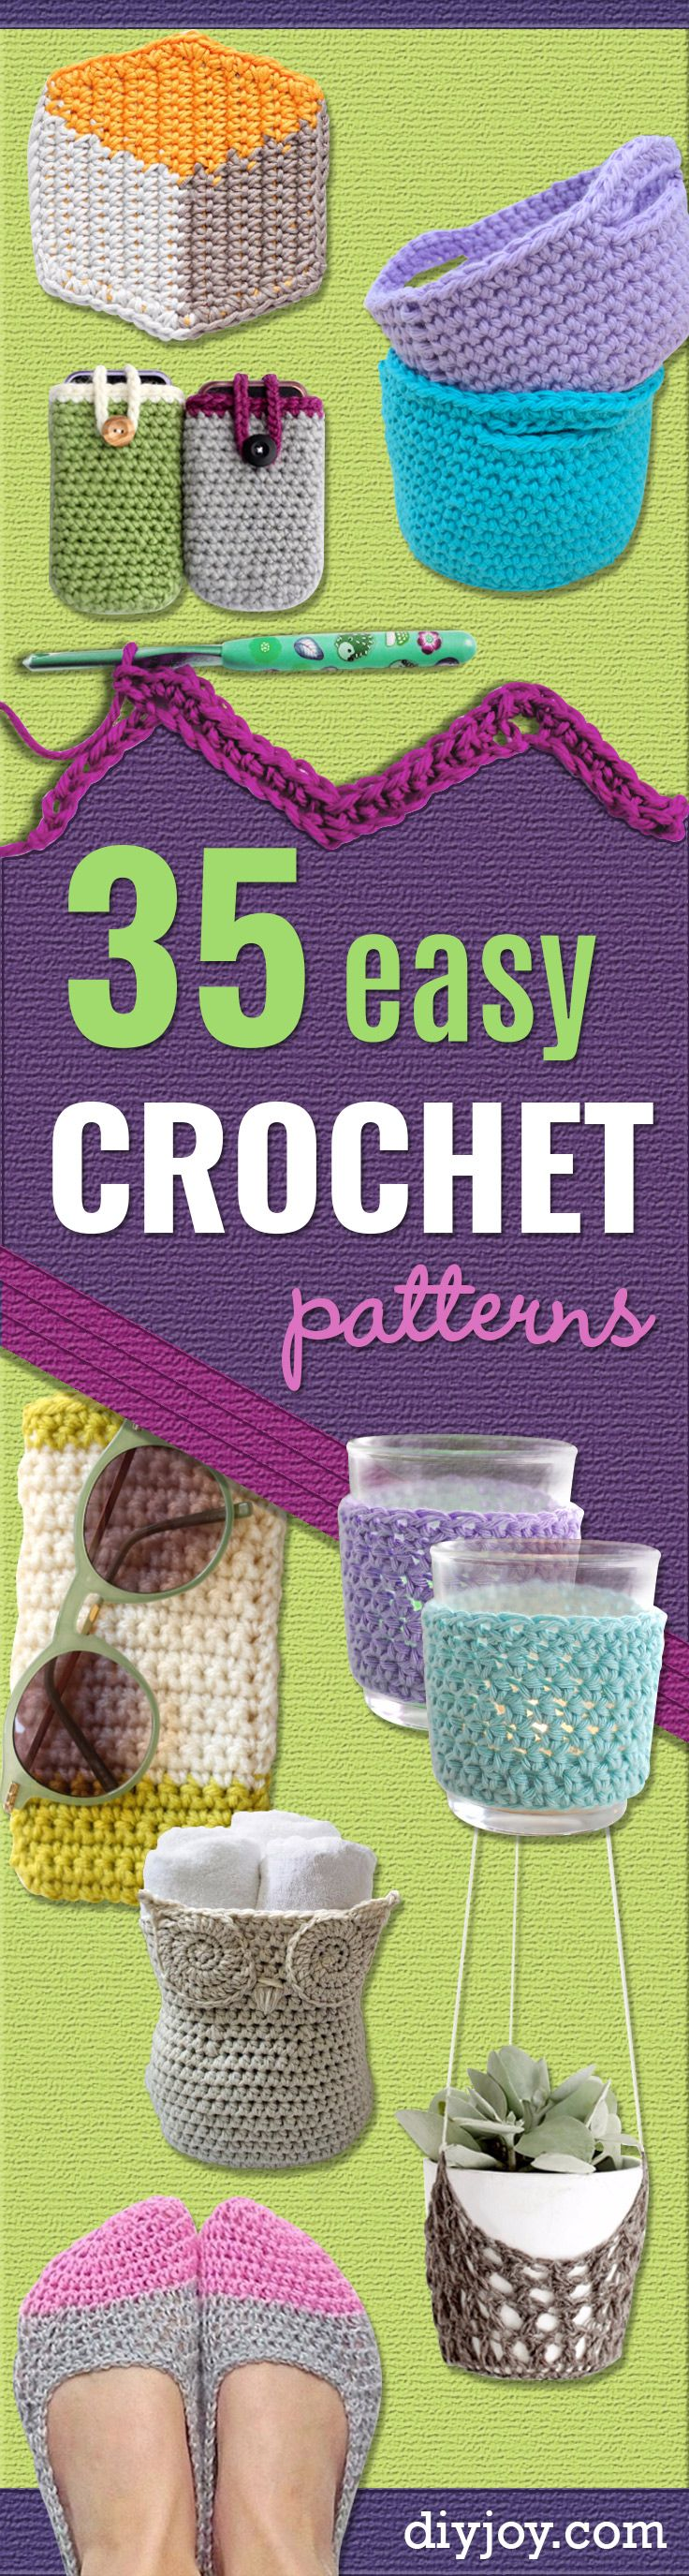 35 Easy Crochet Patterns - Creative Step by Step Crocheted Crafts Make Cool DIY Gifts for Friends and Family - Crochet Patterns For Beginners, Quick And Easy Crochet Patterns, Crochet Ideas To Try, Crochet Ideas To Make And Sell, Easy Crochet Ideas http://diyjoy.com/easy-crochet-patterns